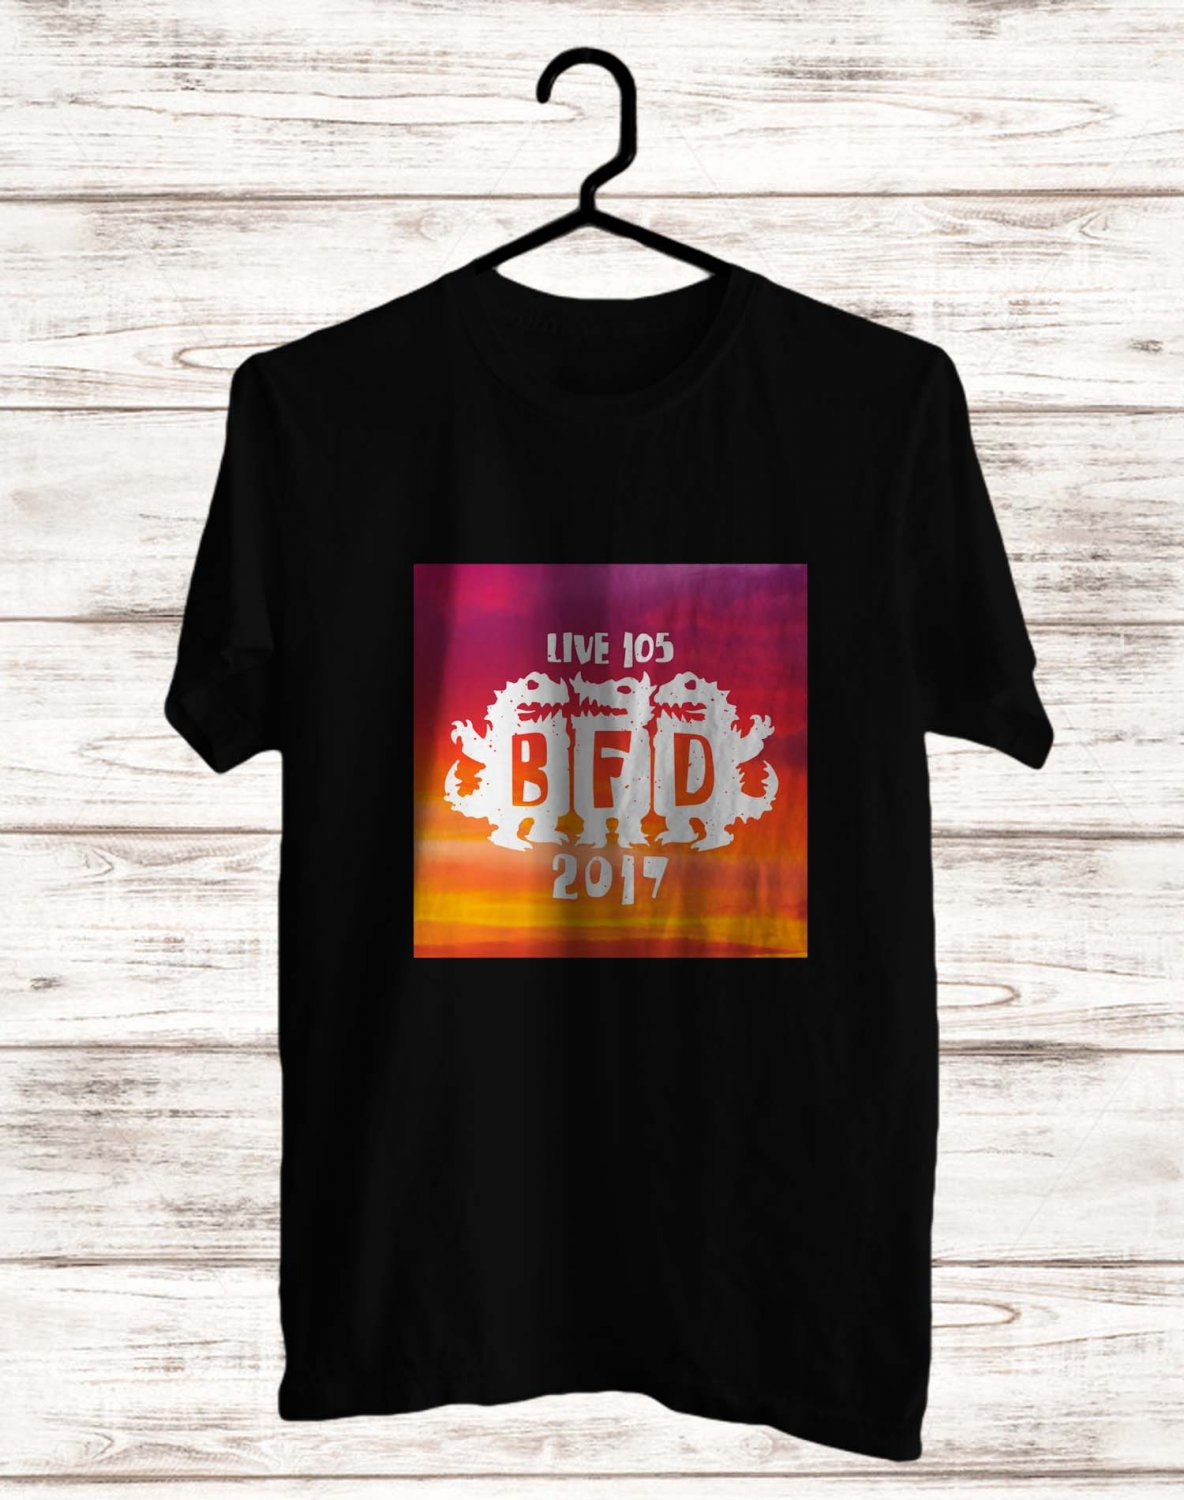 Live 105 BFD Festival Jun 2017 Black Tee's  Front Side by Complexart c2